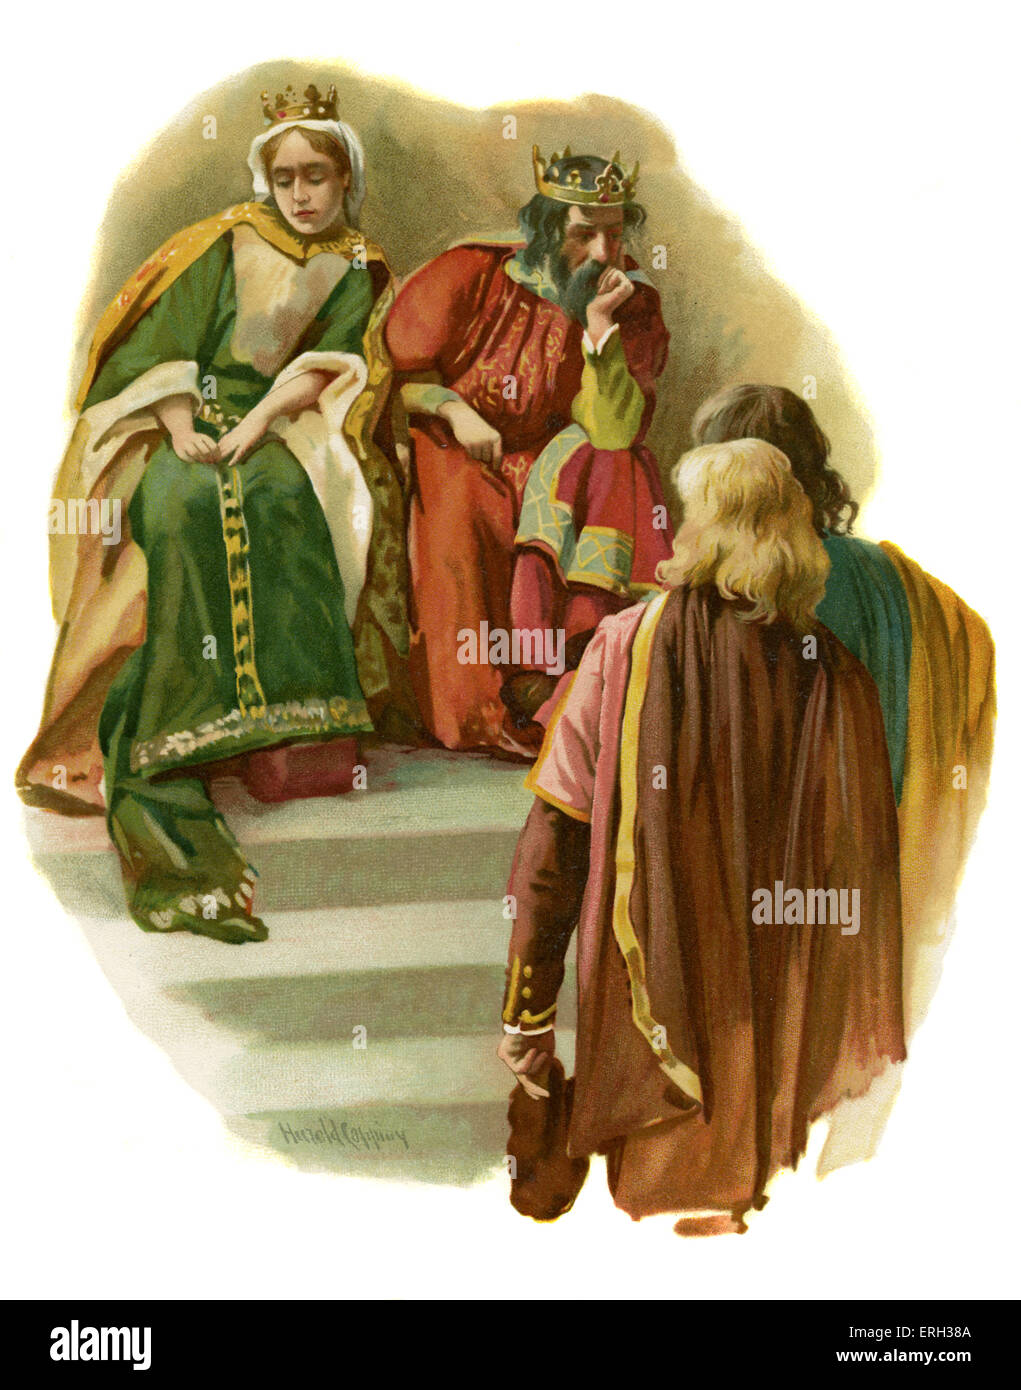 Claudius tells Rosencrantz and Guildenstern of Polonius murder by the prince, in Hamlet, Prince of Denmark by William - Stock Image